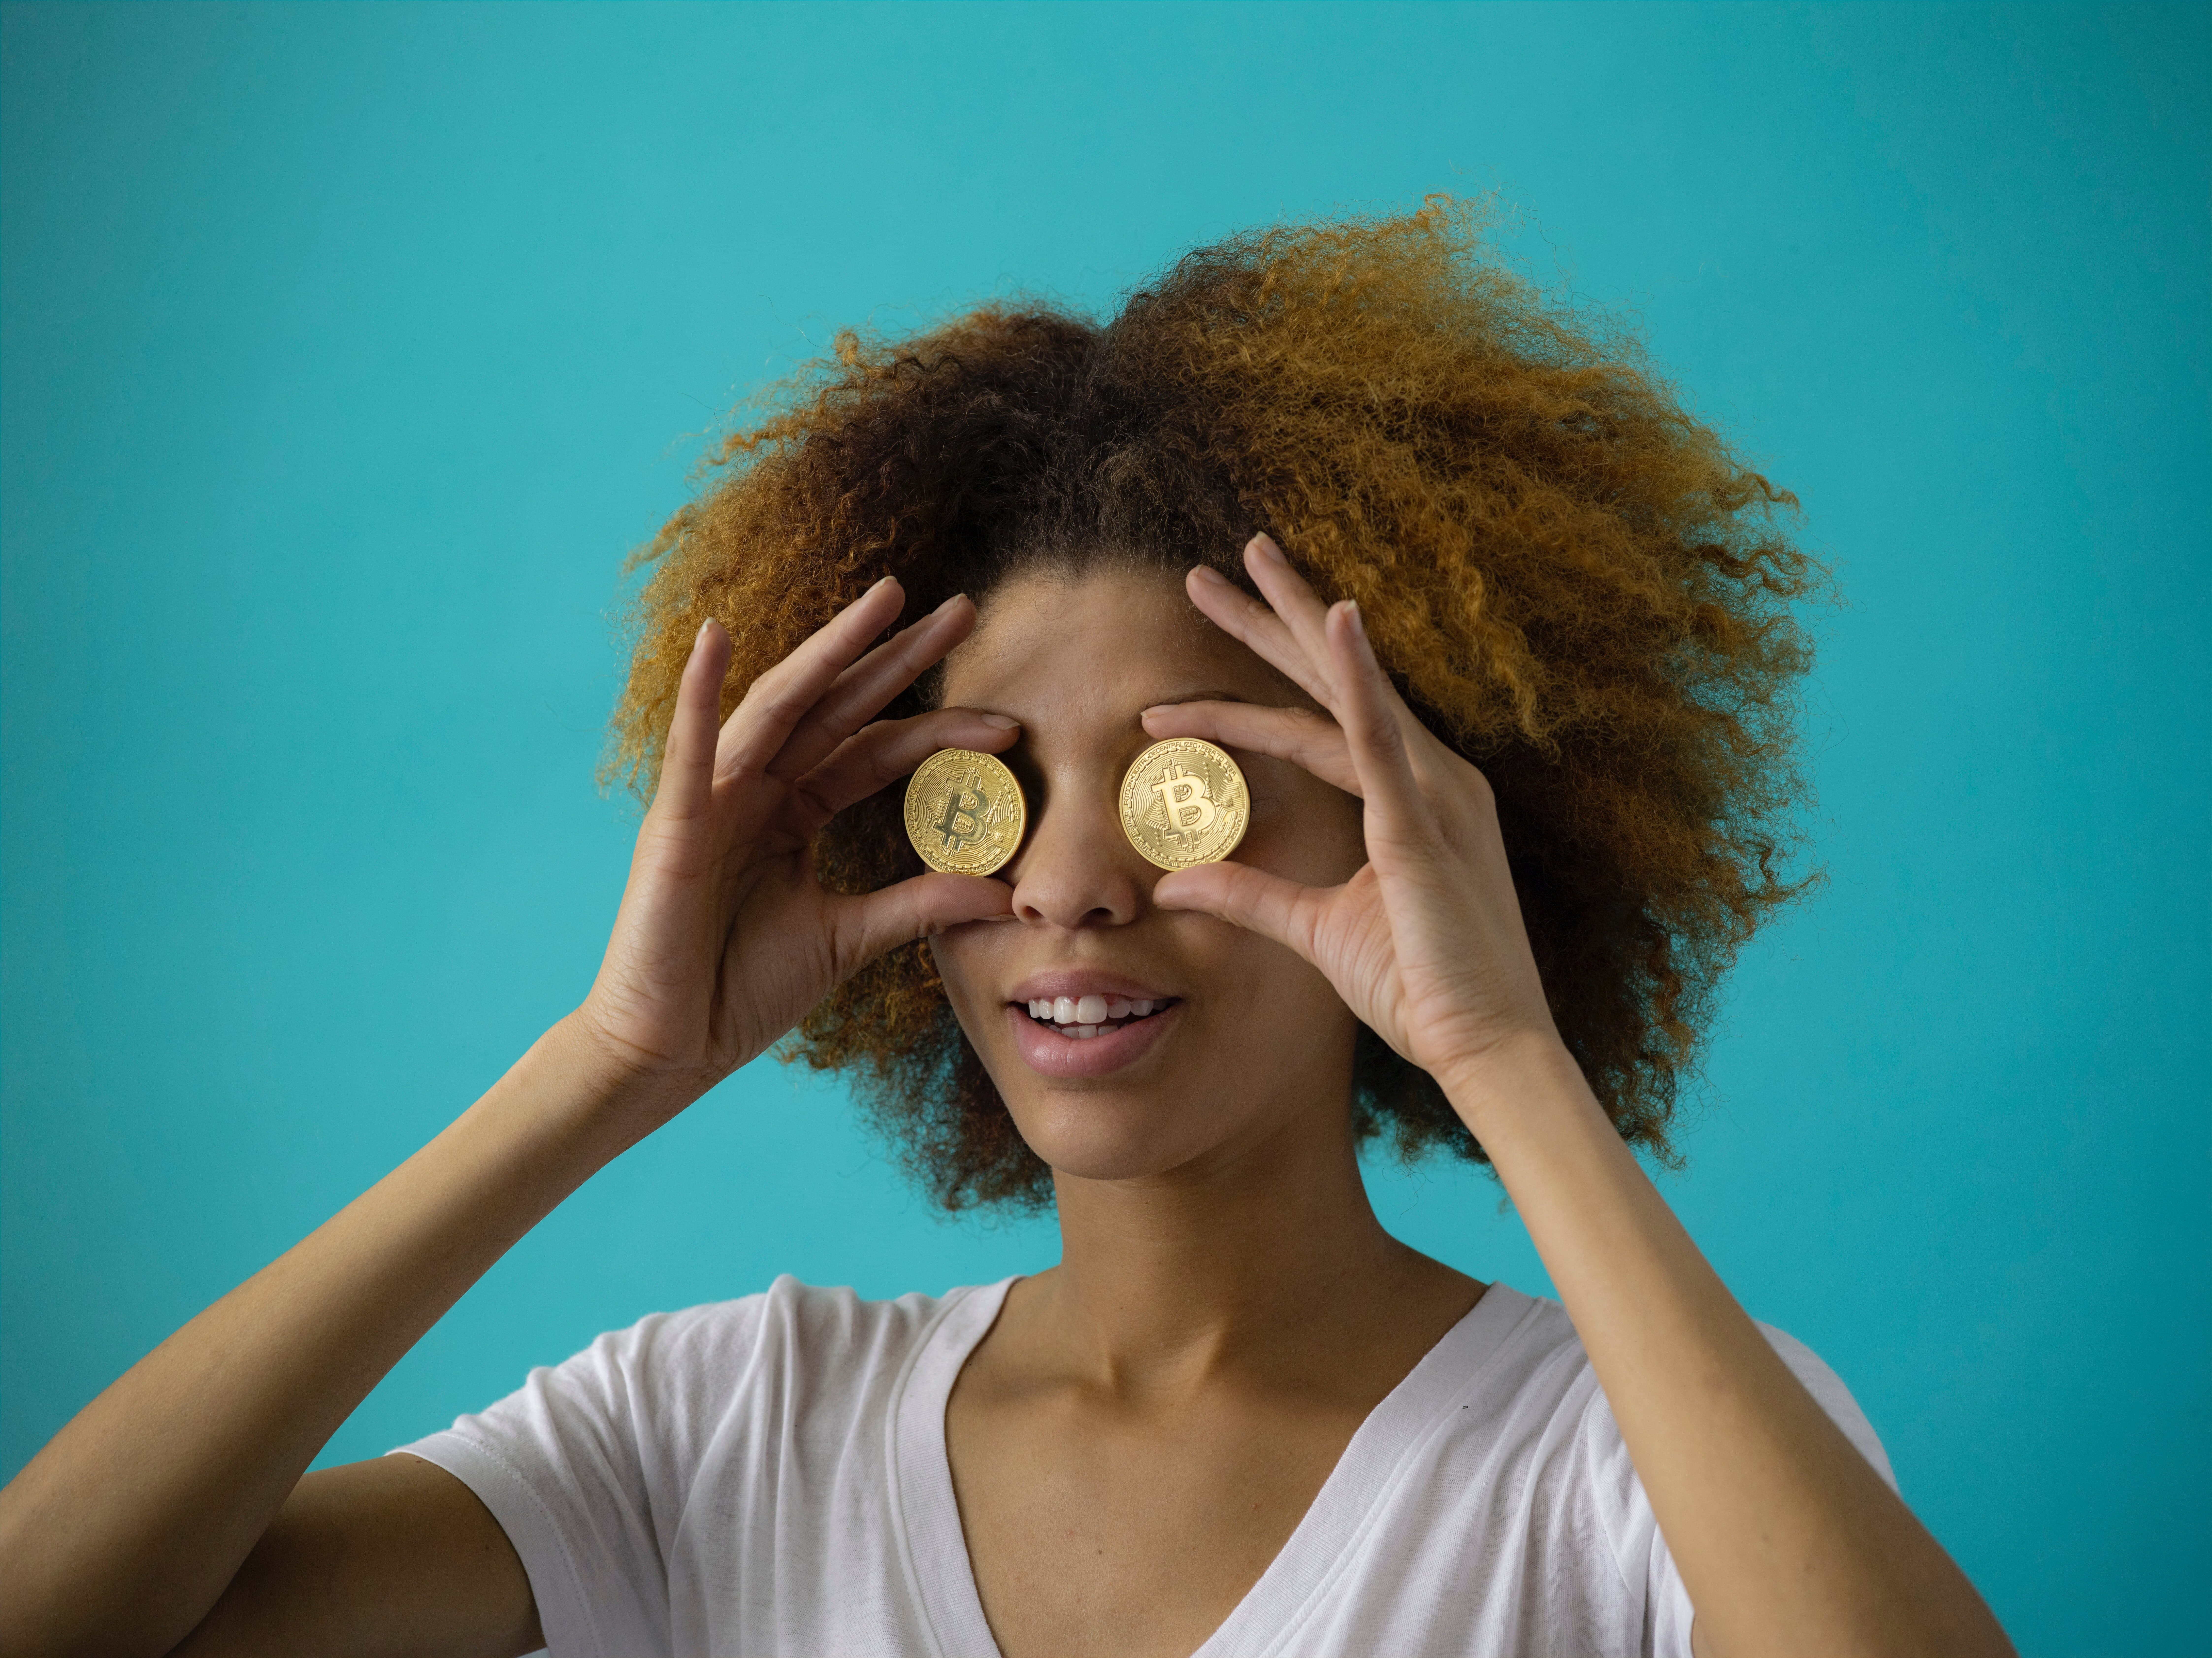 Photo of woman holding 2 Bitcoins in front of her eyes